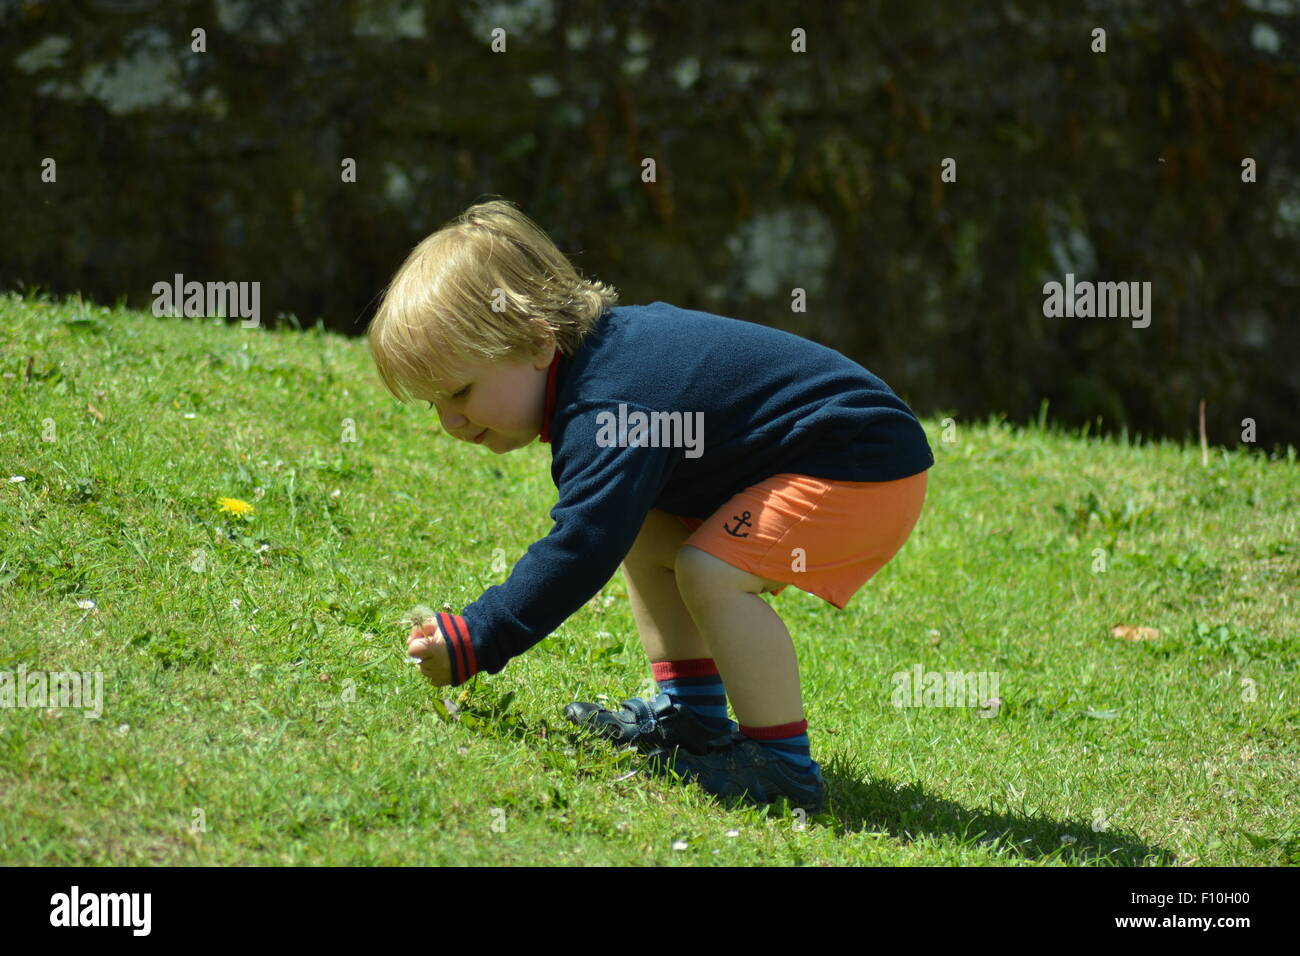 A young blonde haired boy picking a flower on a grassy bank - Stock Image